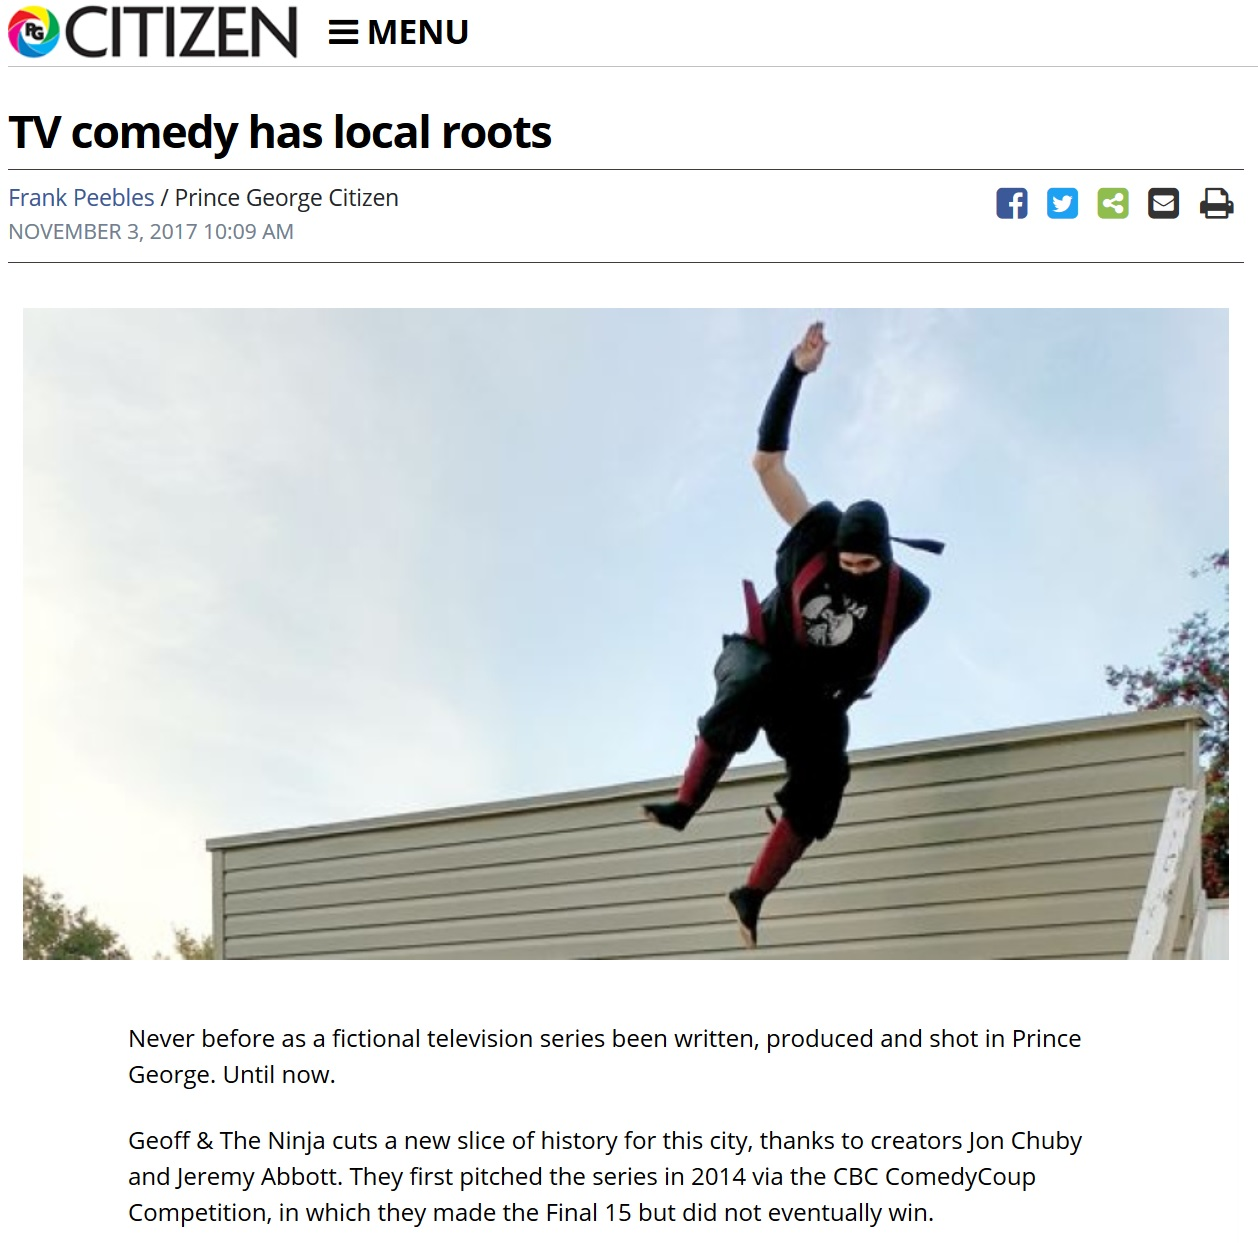 Look Mom! We made the paper! -